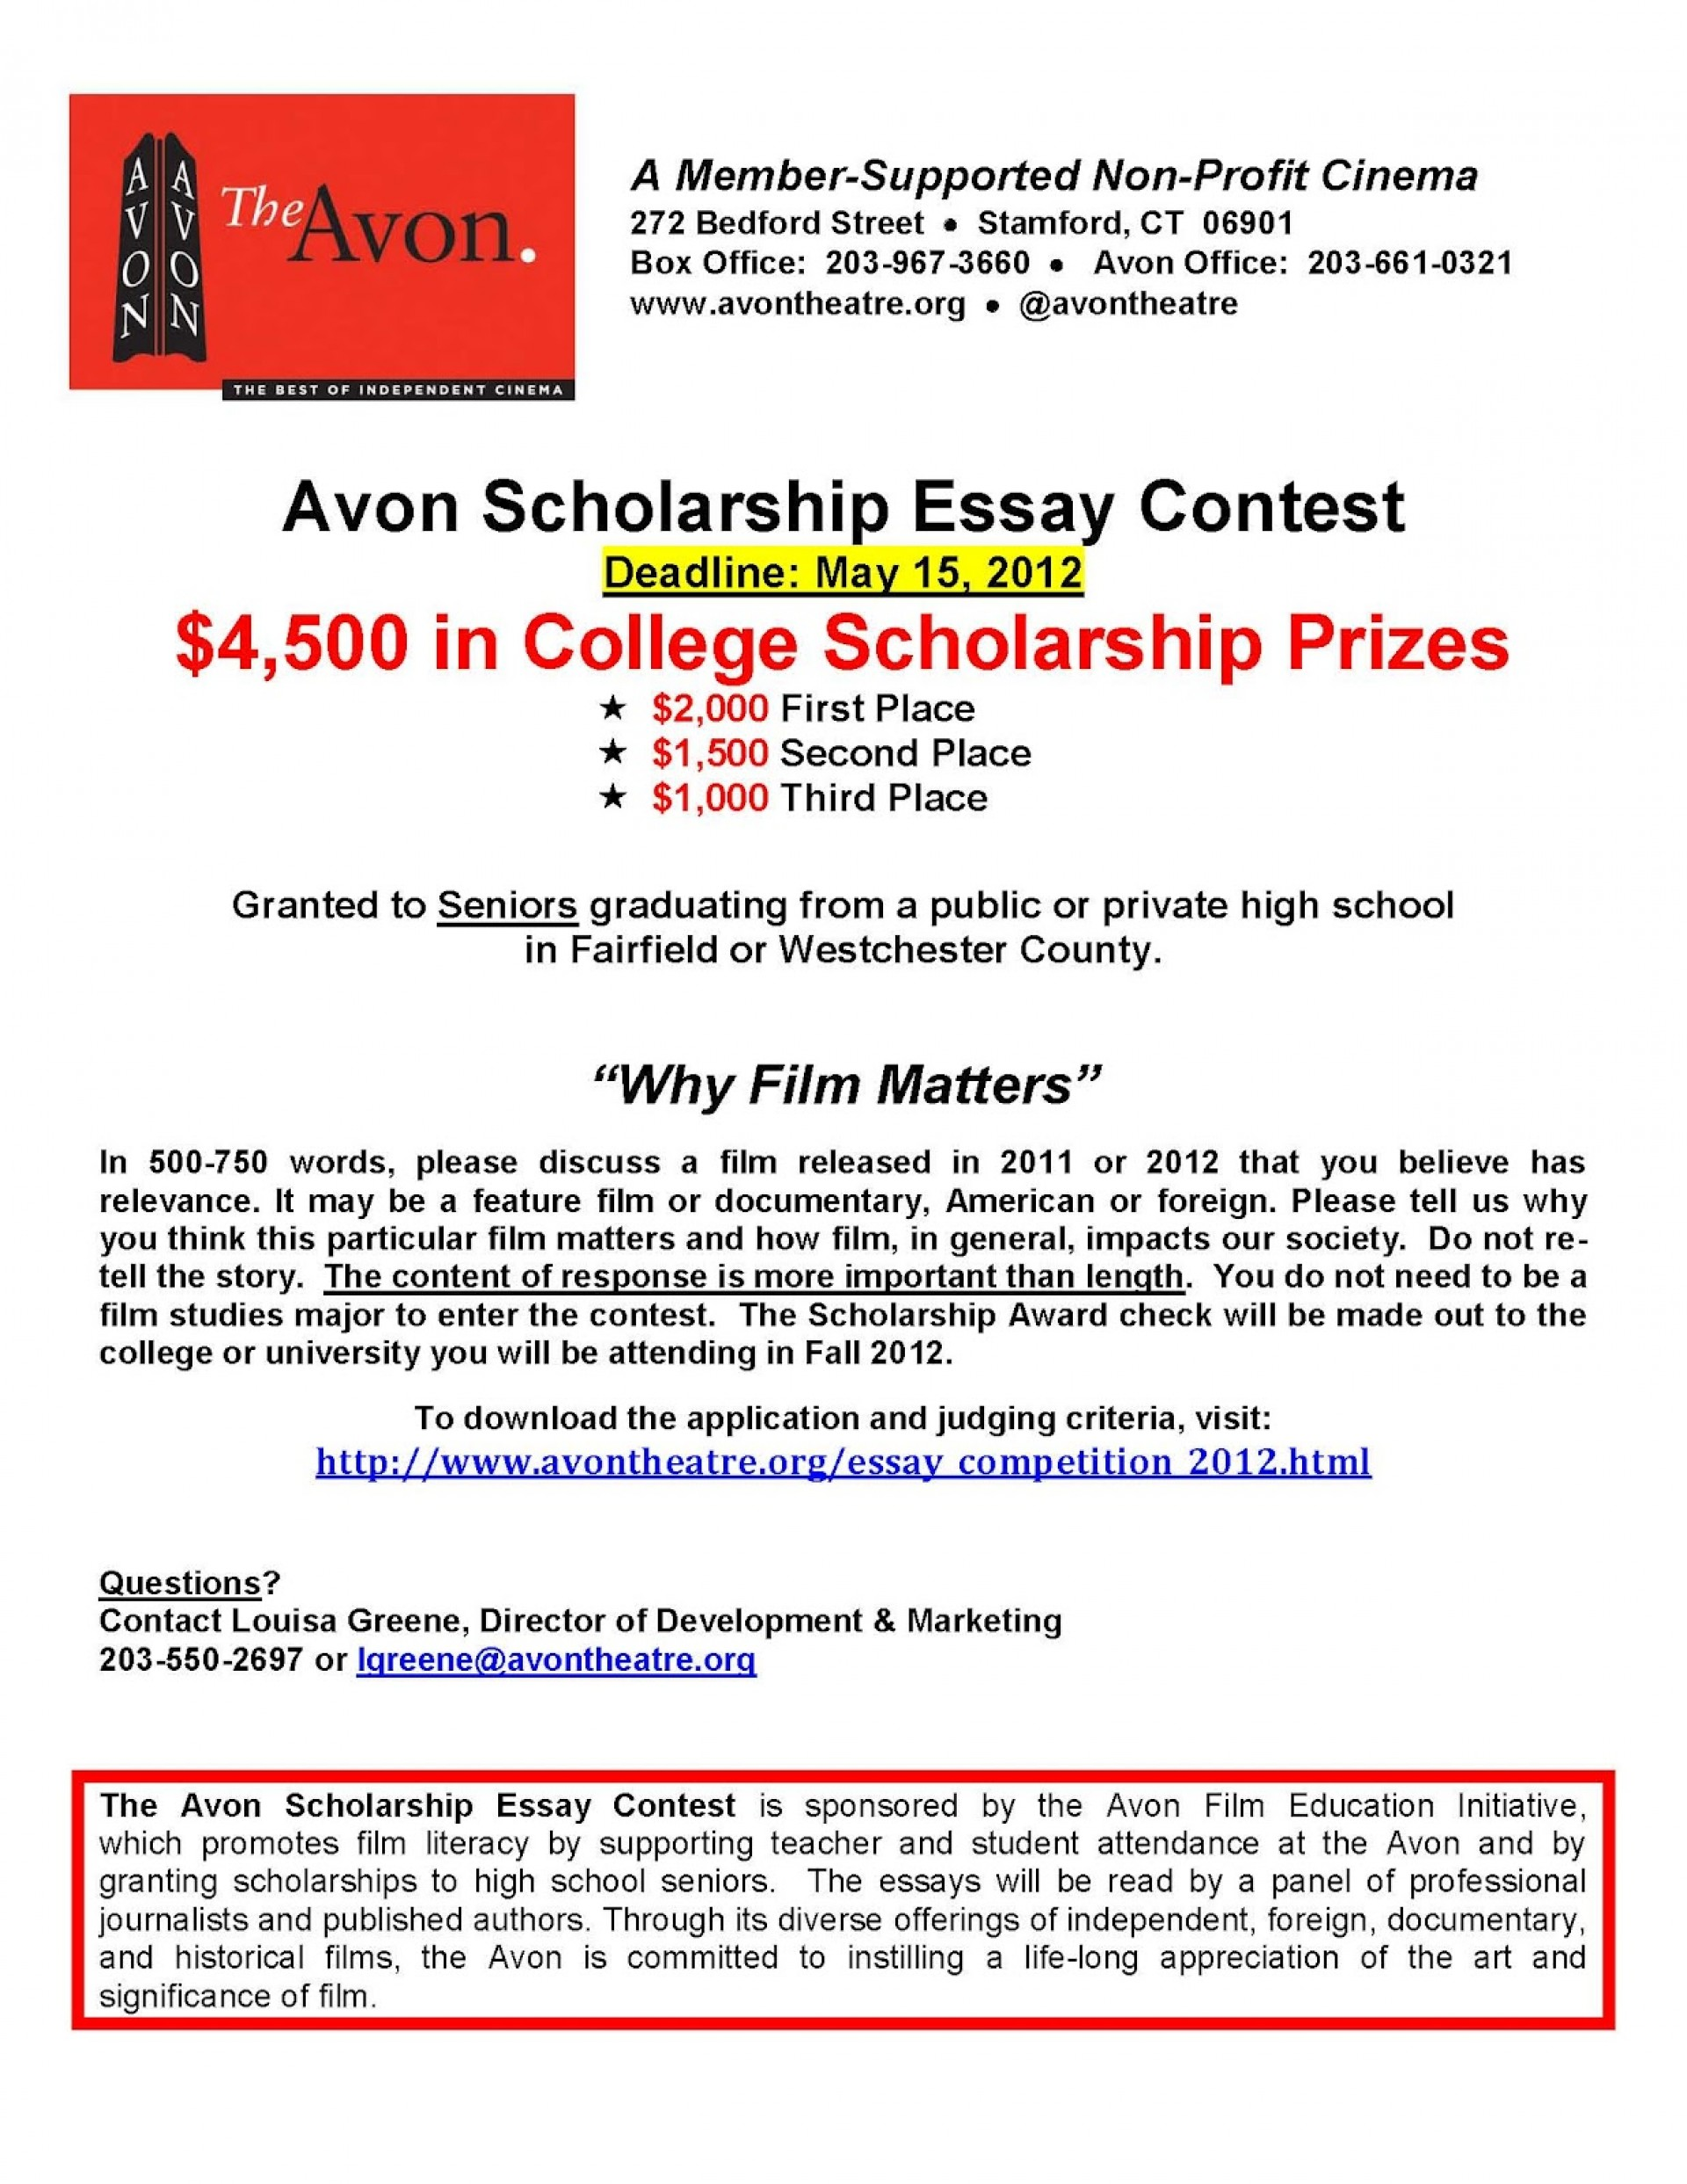 016 Avonscholarshipessaycontest2012flyer Essay Example Shocking Scholarships For High School Students 2018 2019 1920